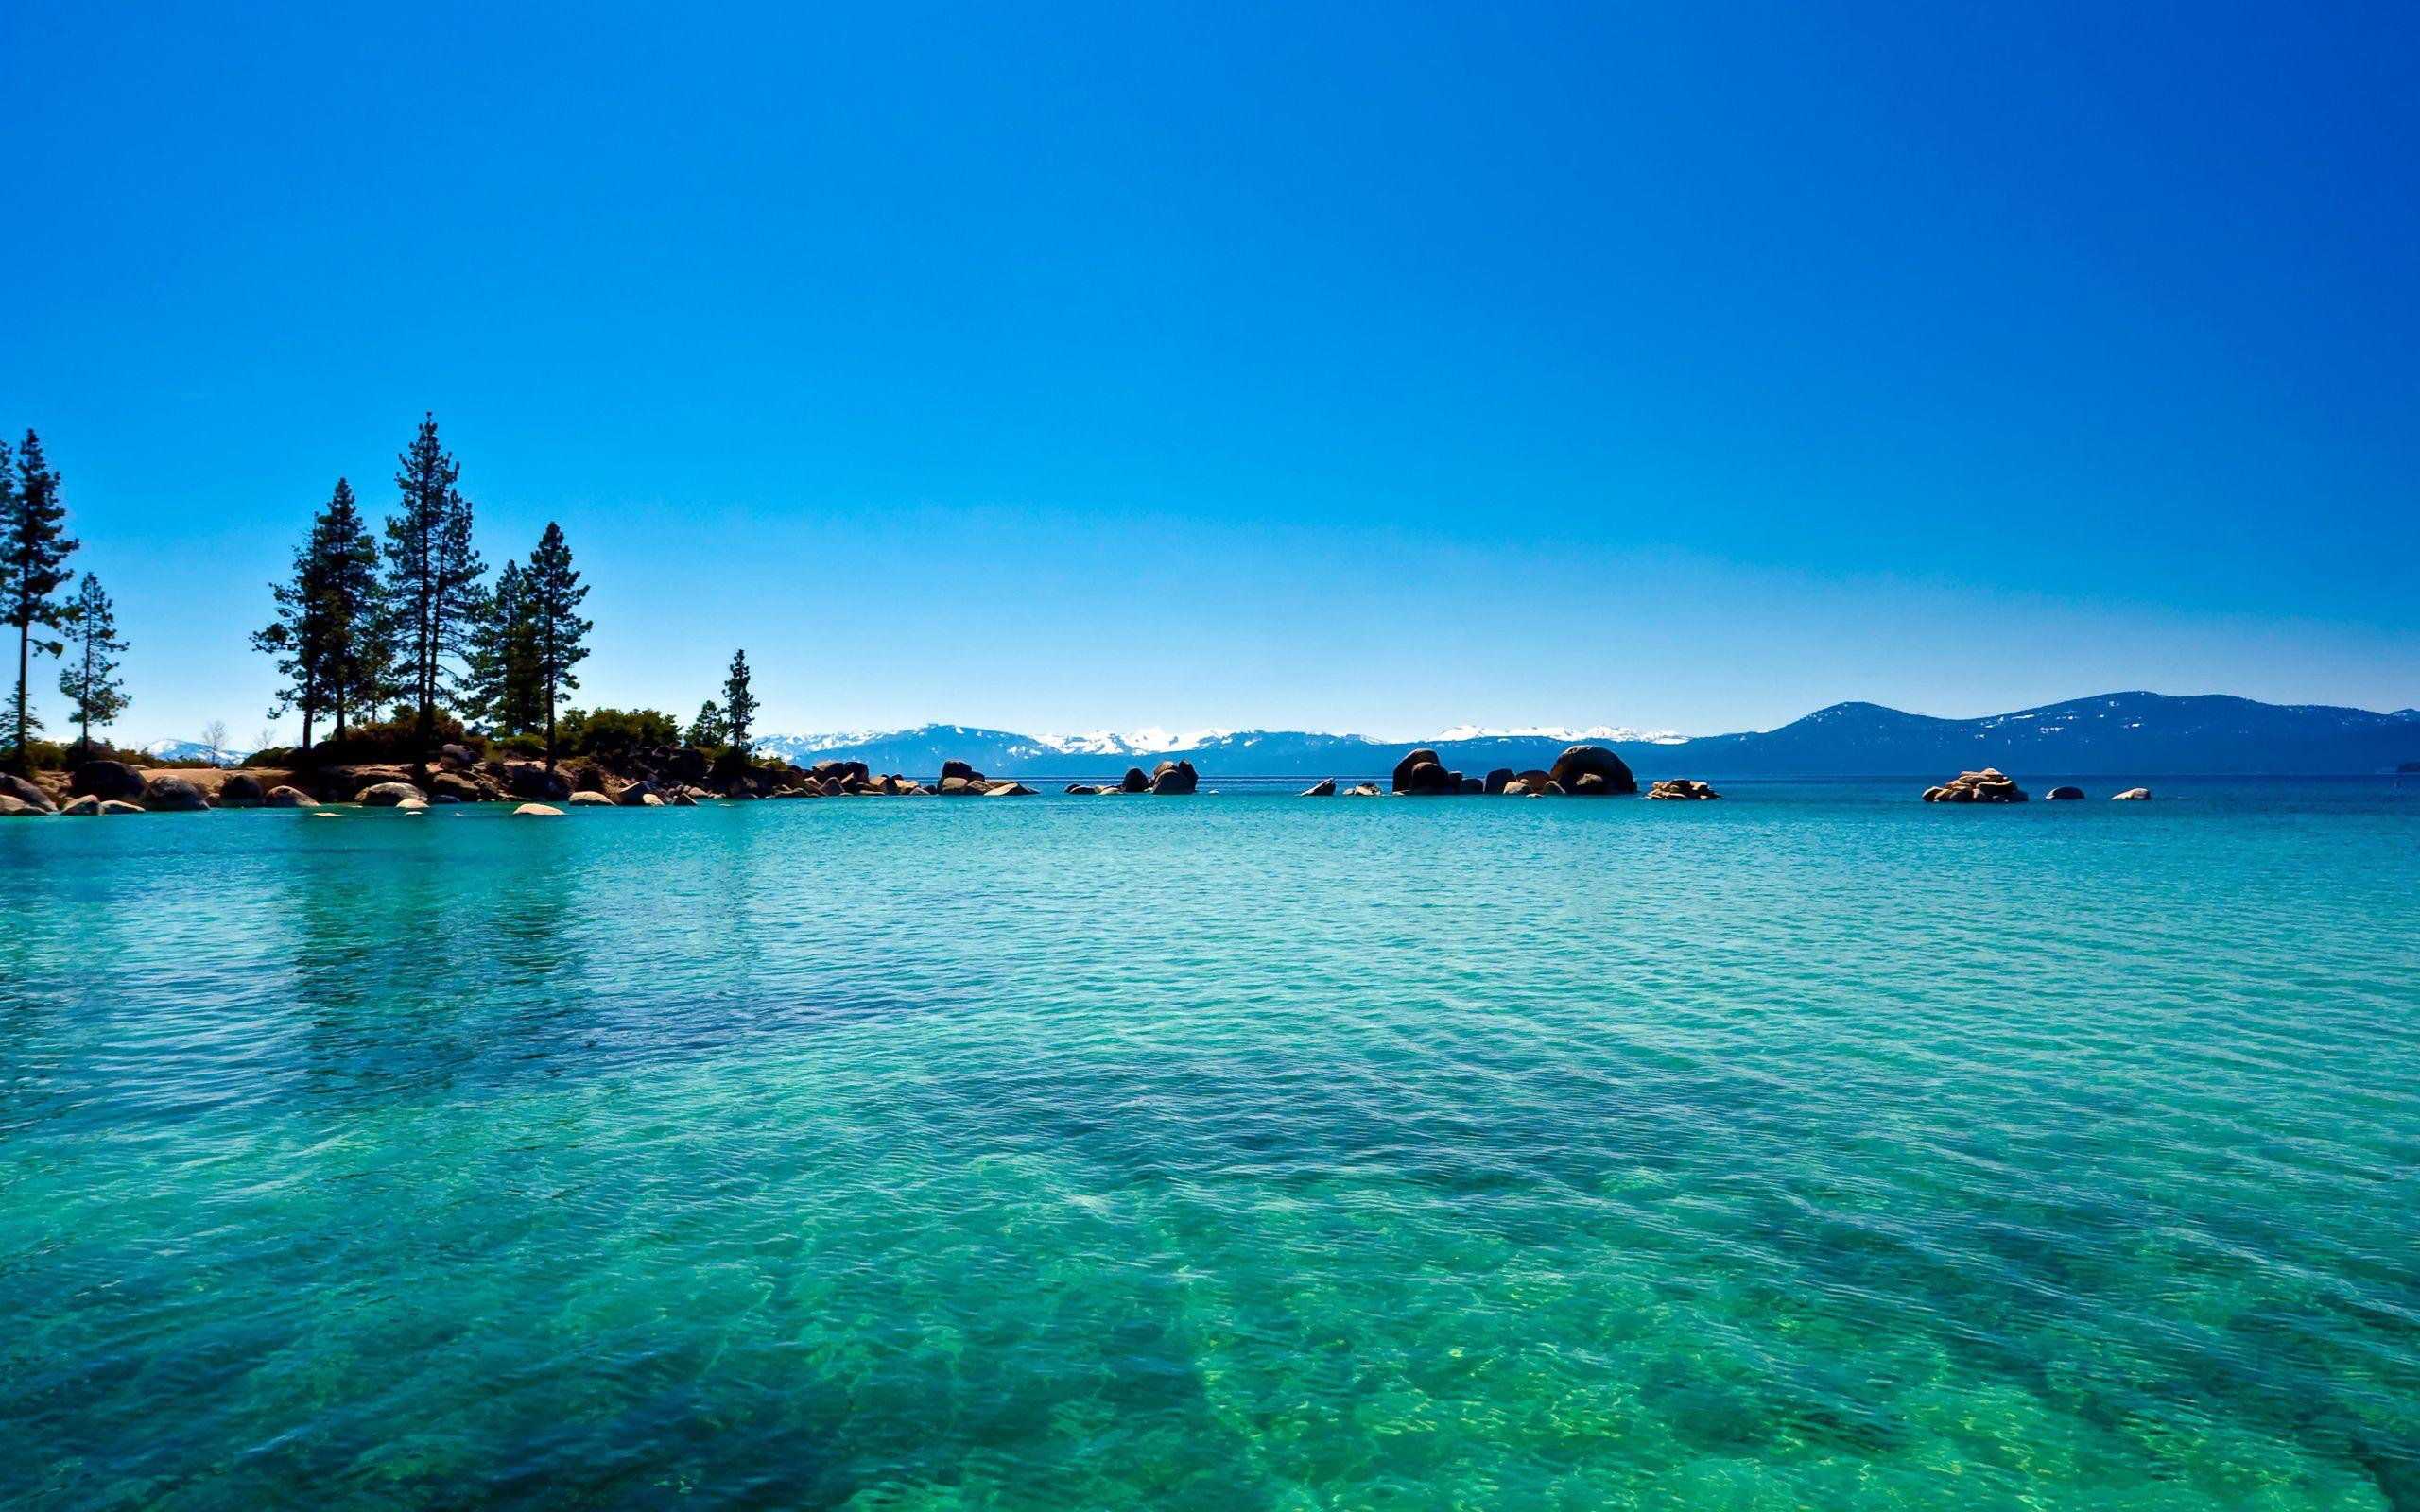 Tahoe lake